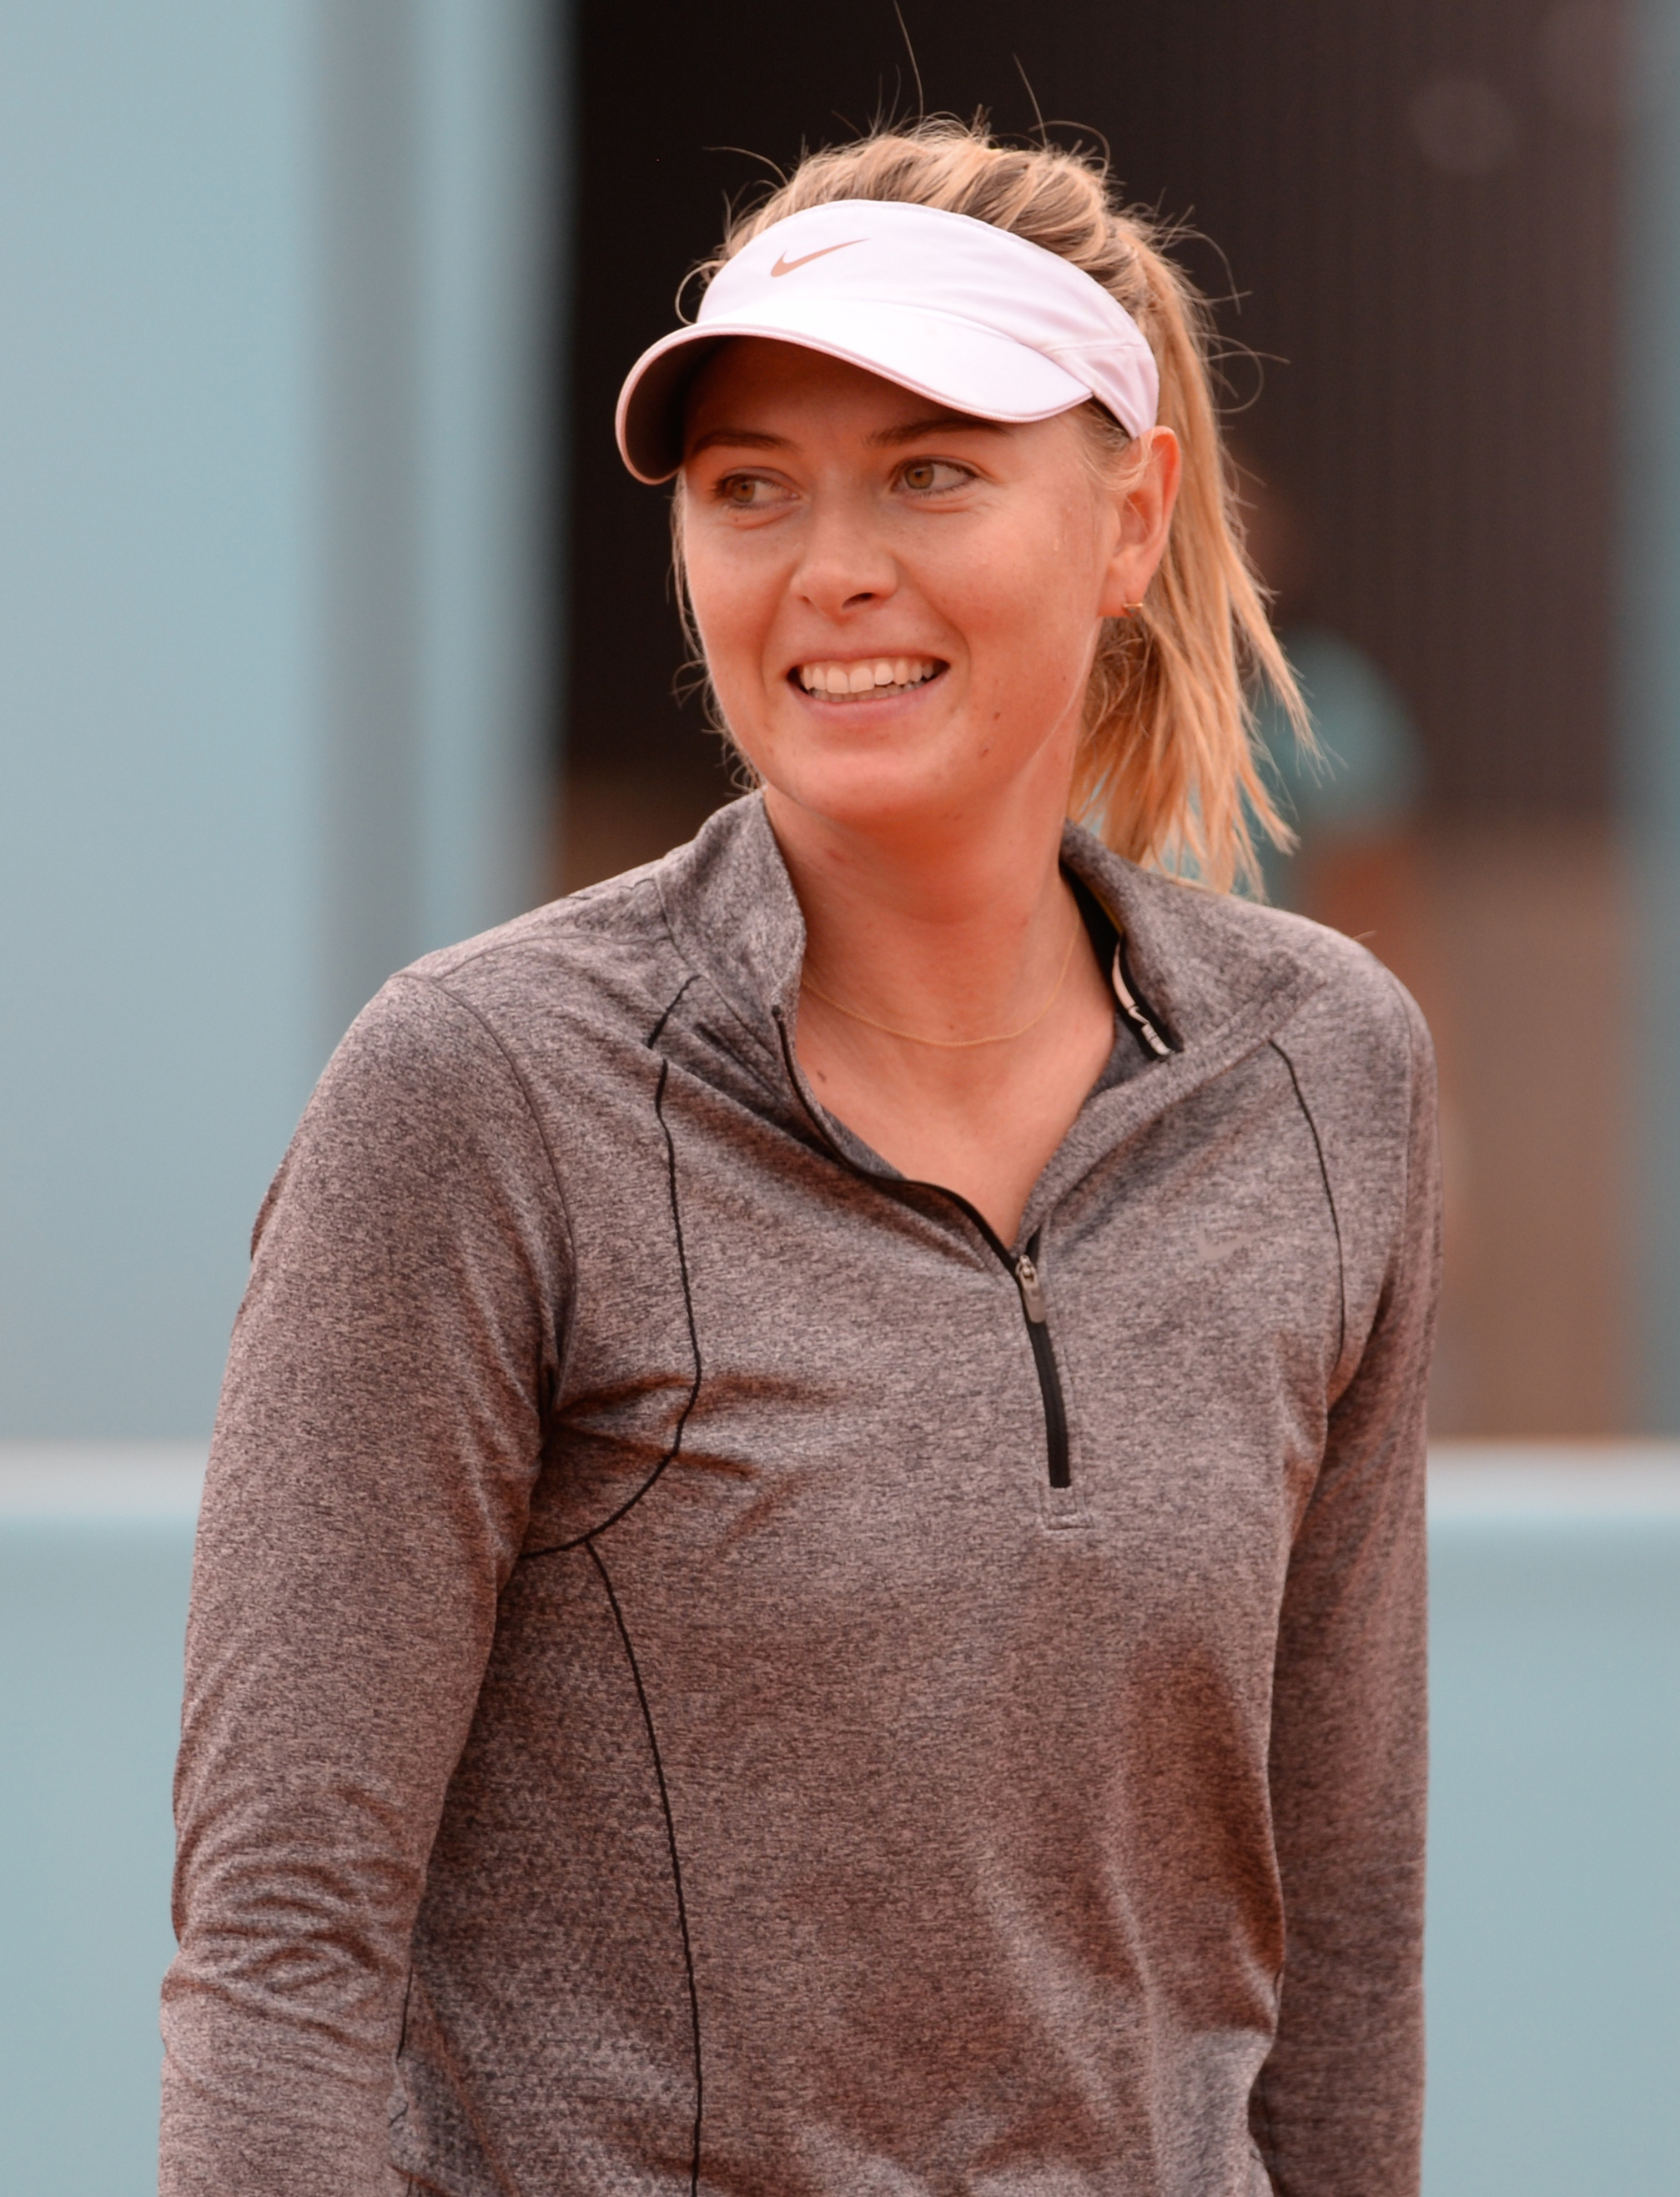 Maria Sharapova opened up about facing doping ban